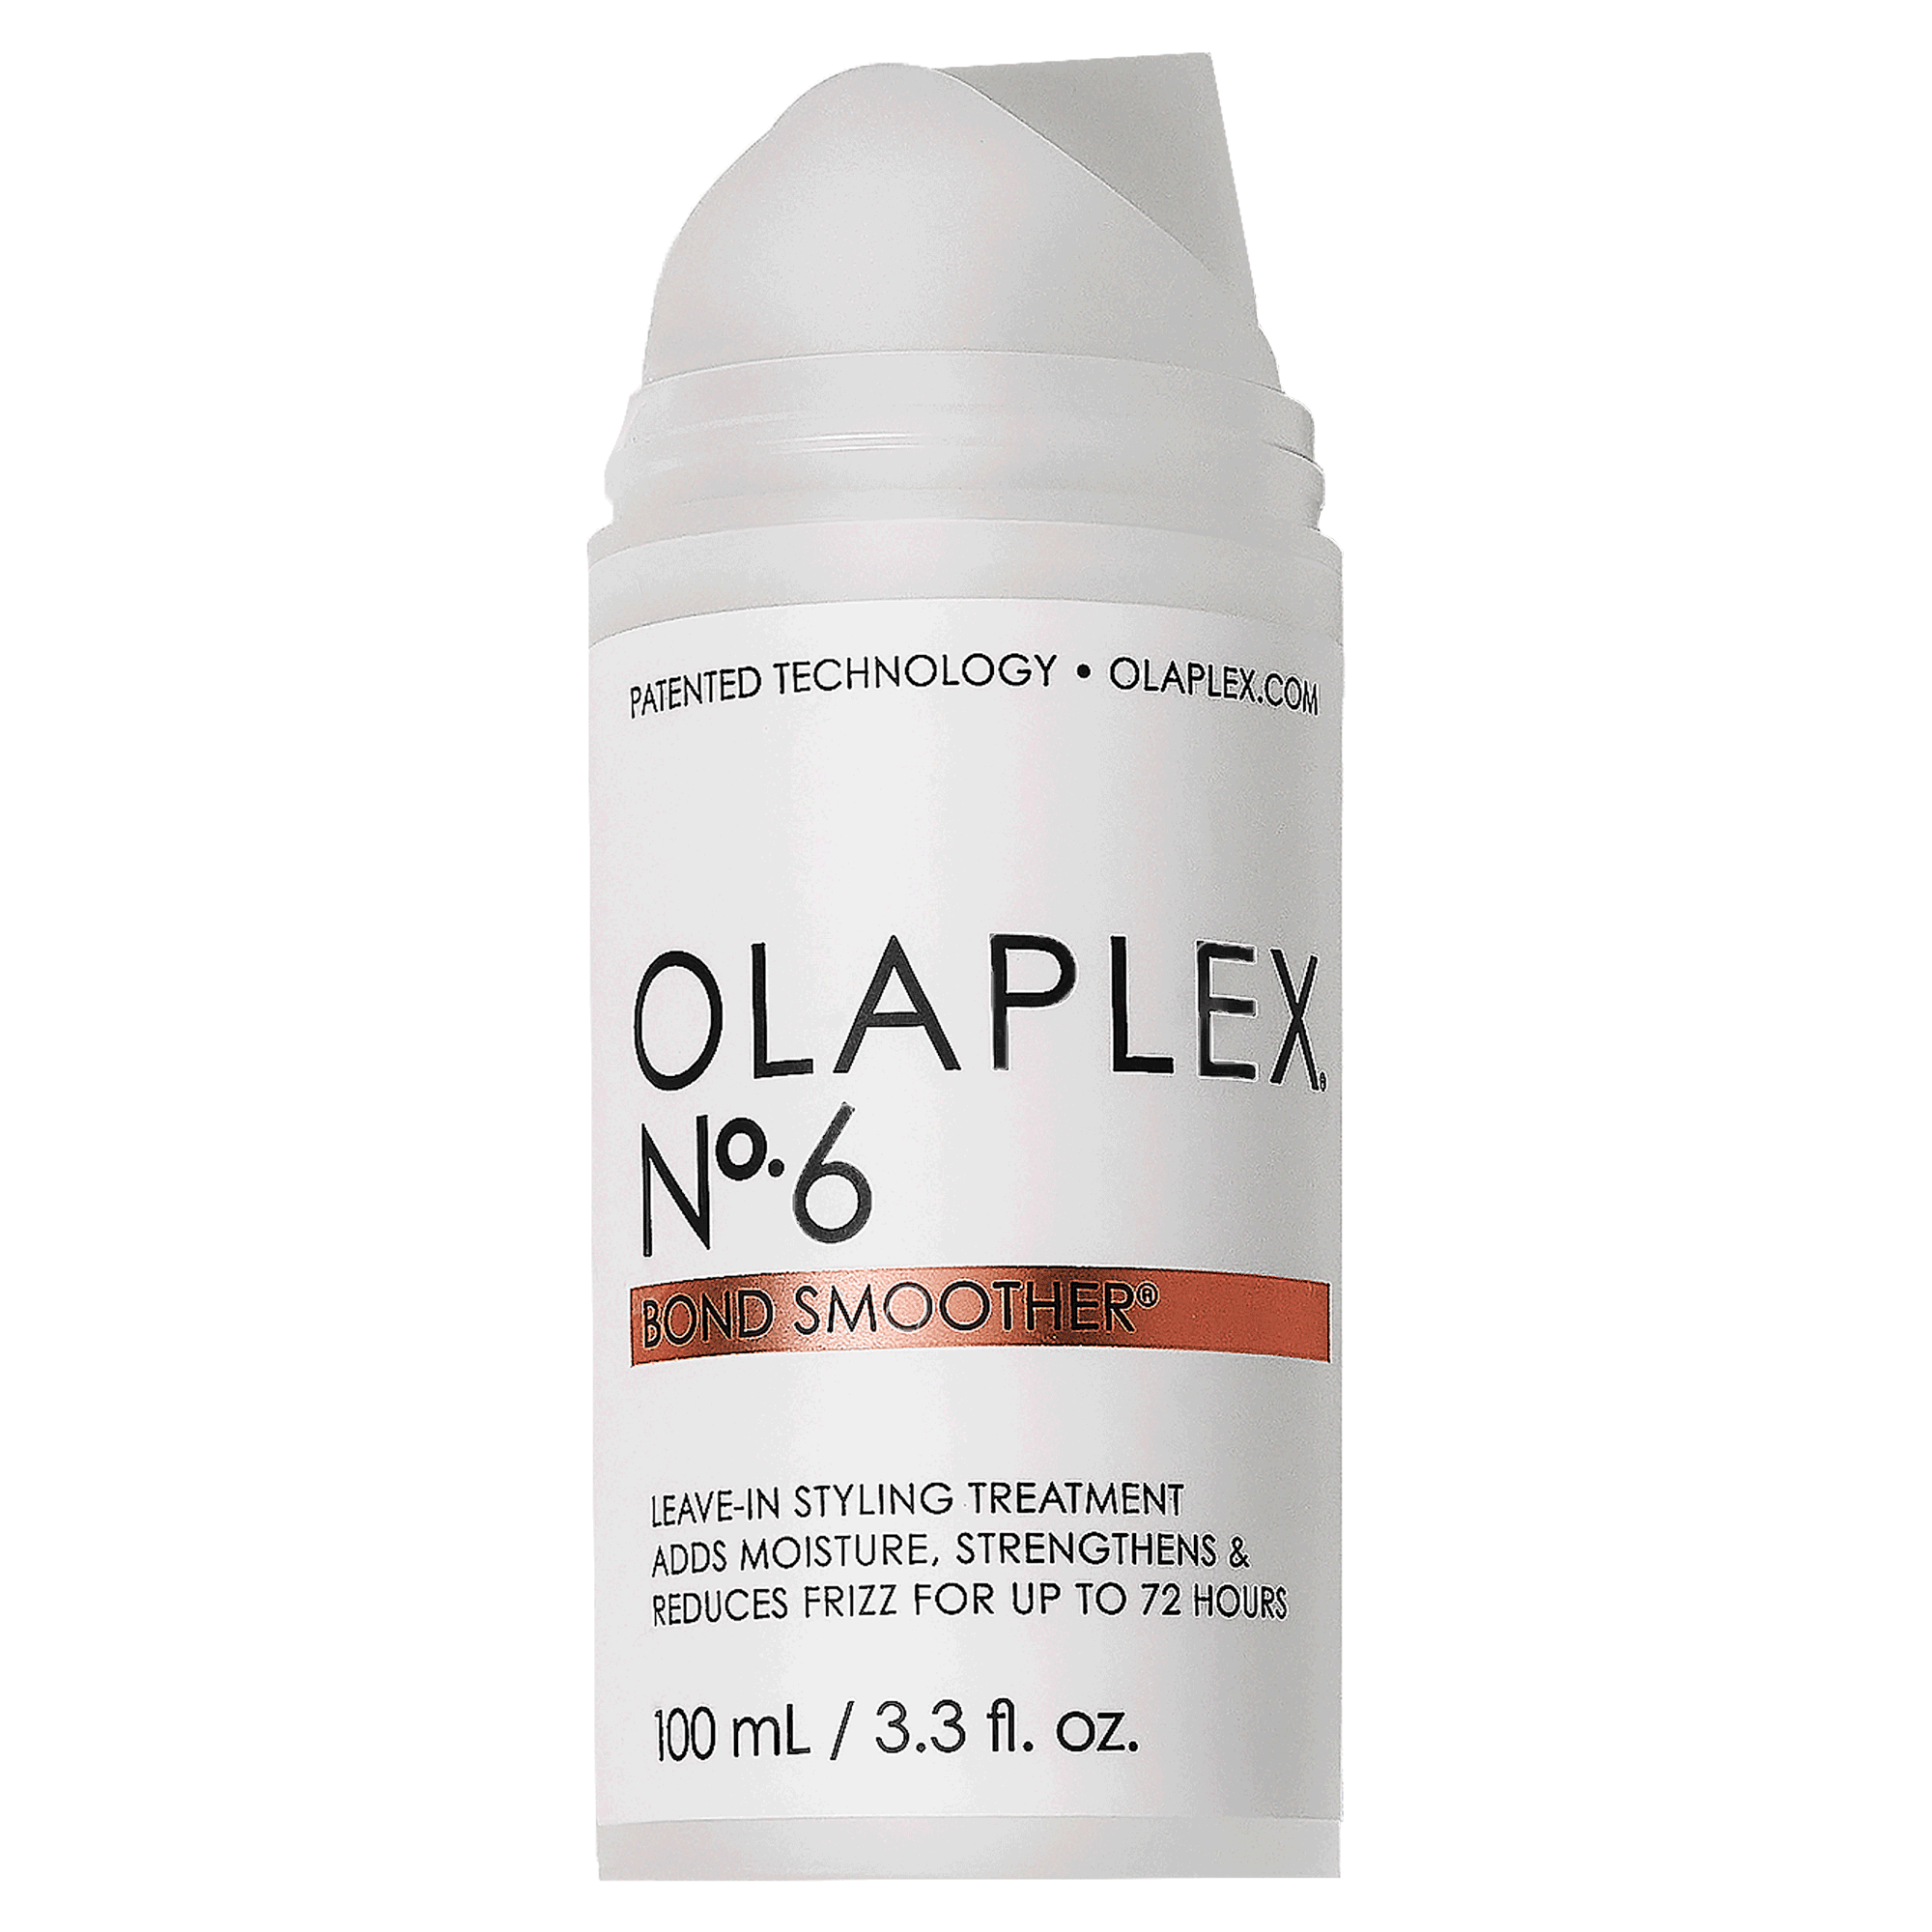 No. 6 Bond Smoother